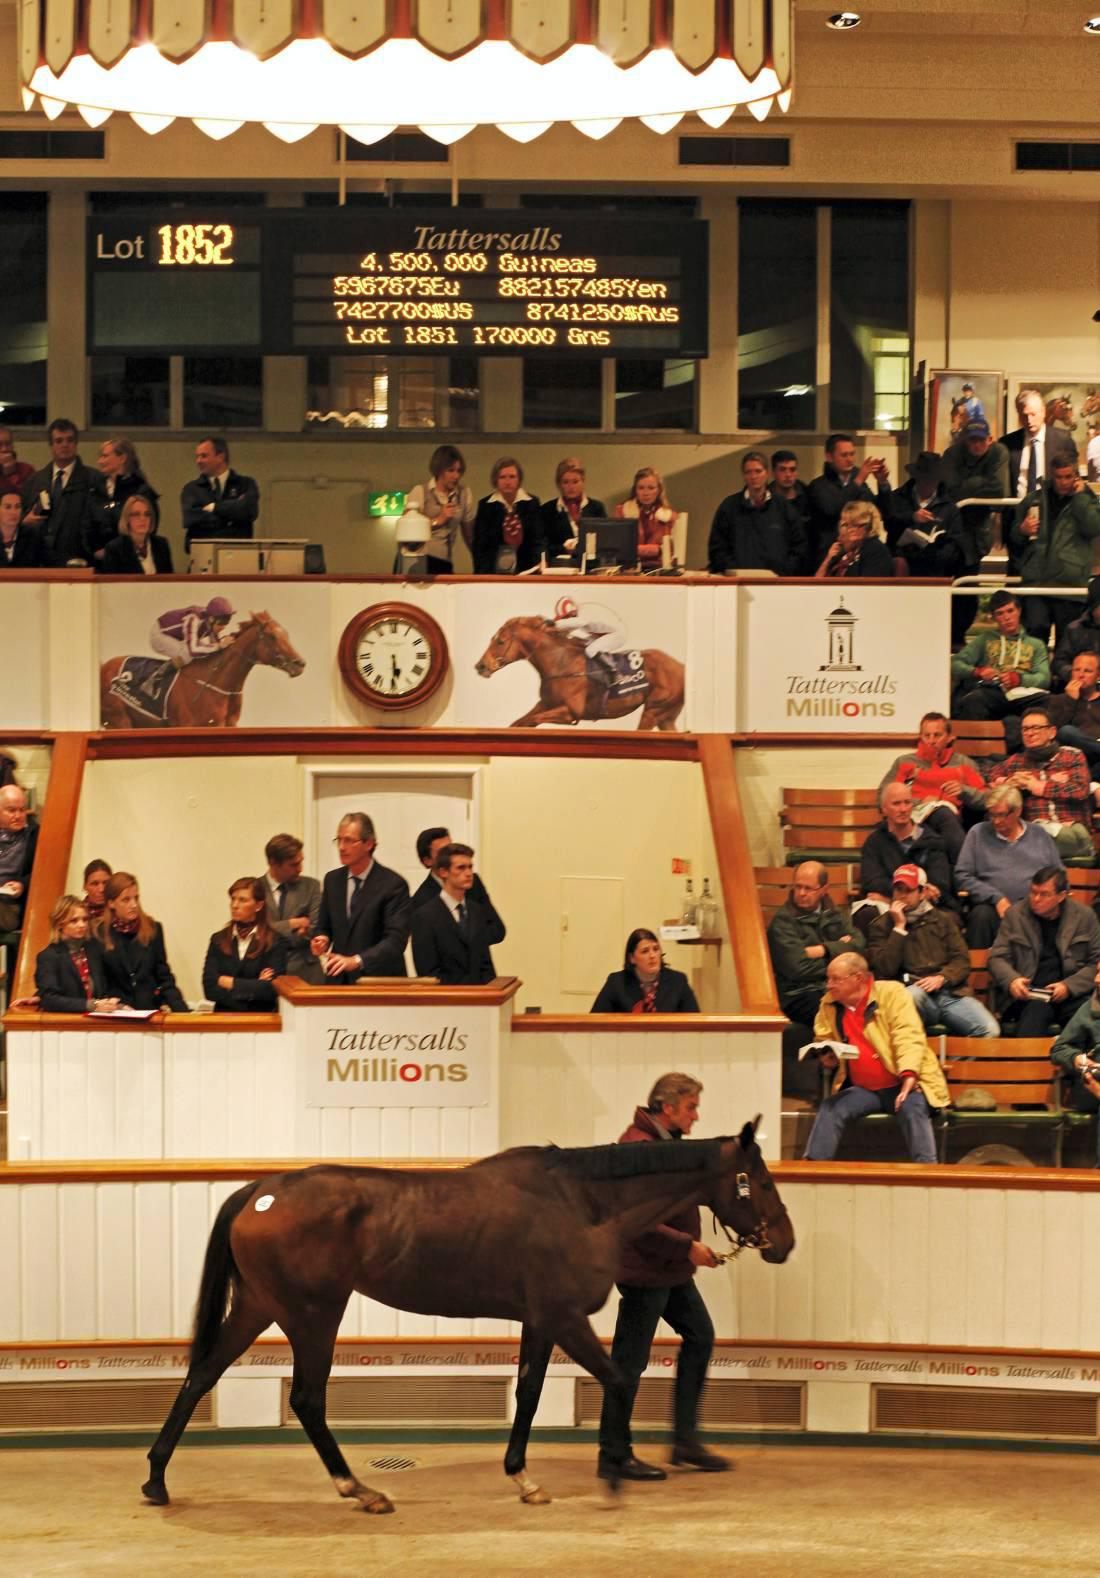 Just The Judge sets new record at 4,500,000gns